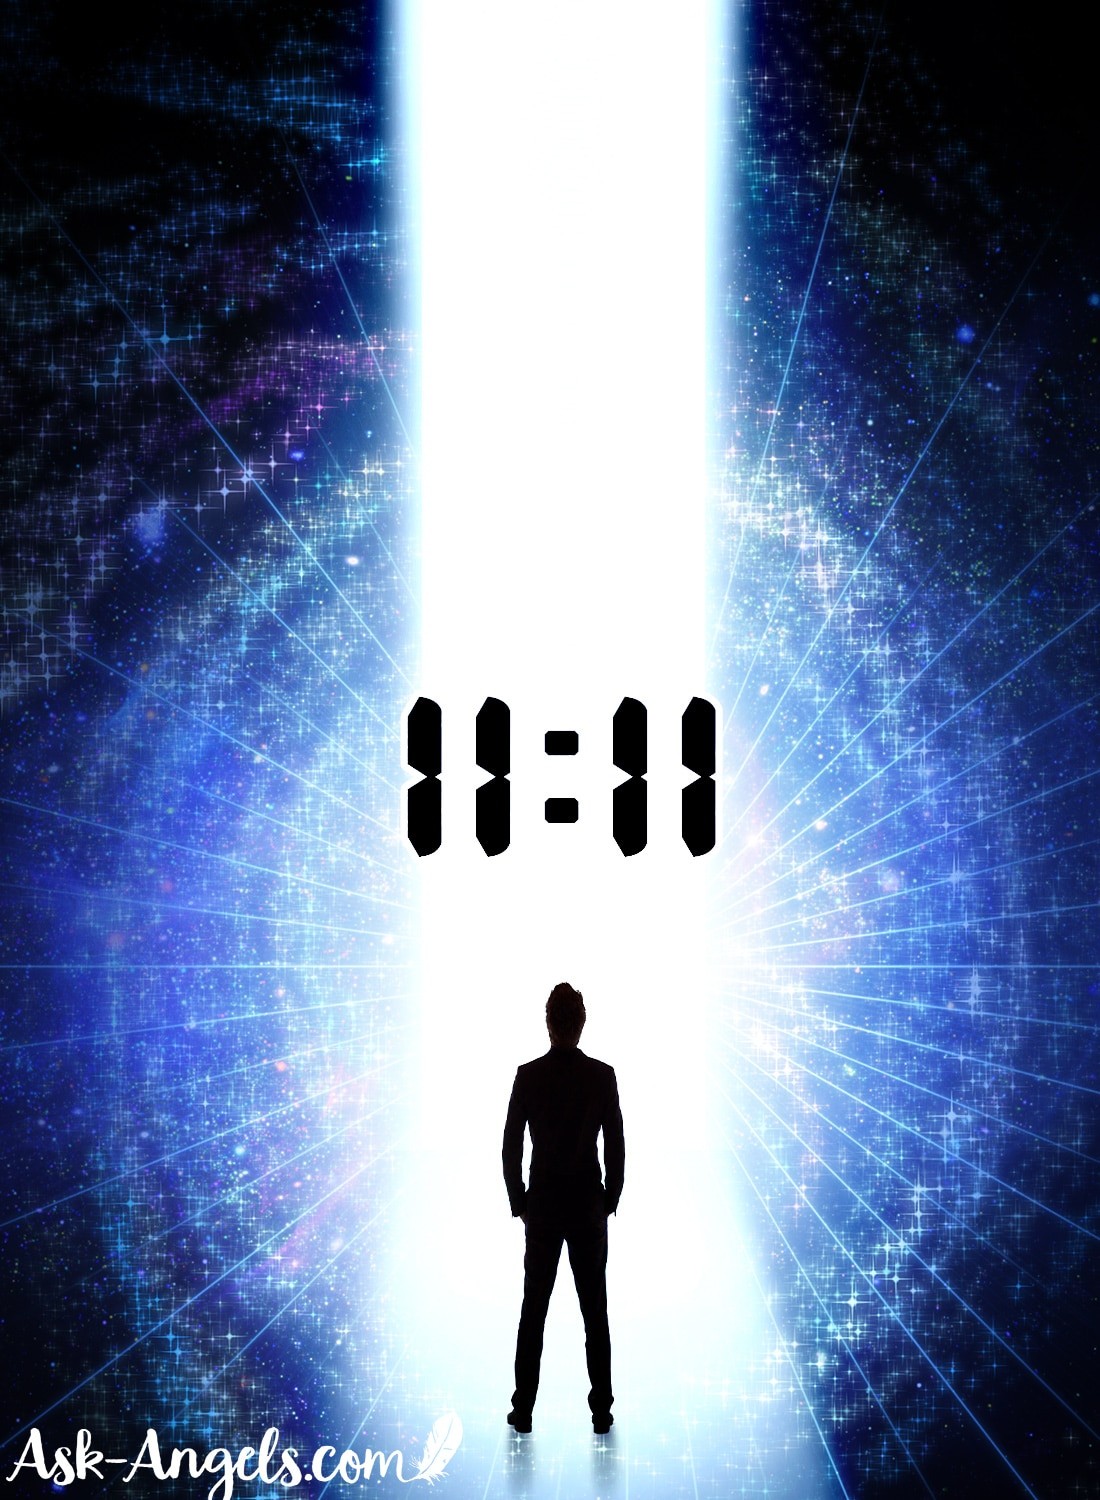 11-11 Spiritual Meaning and Portal of Light